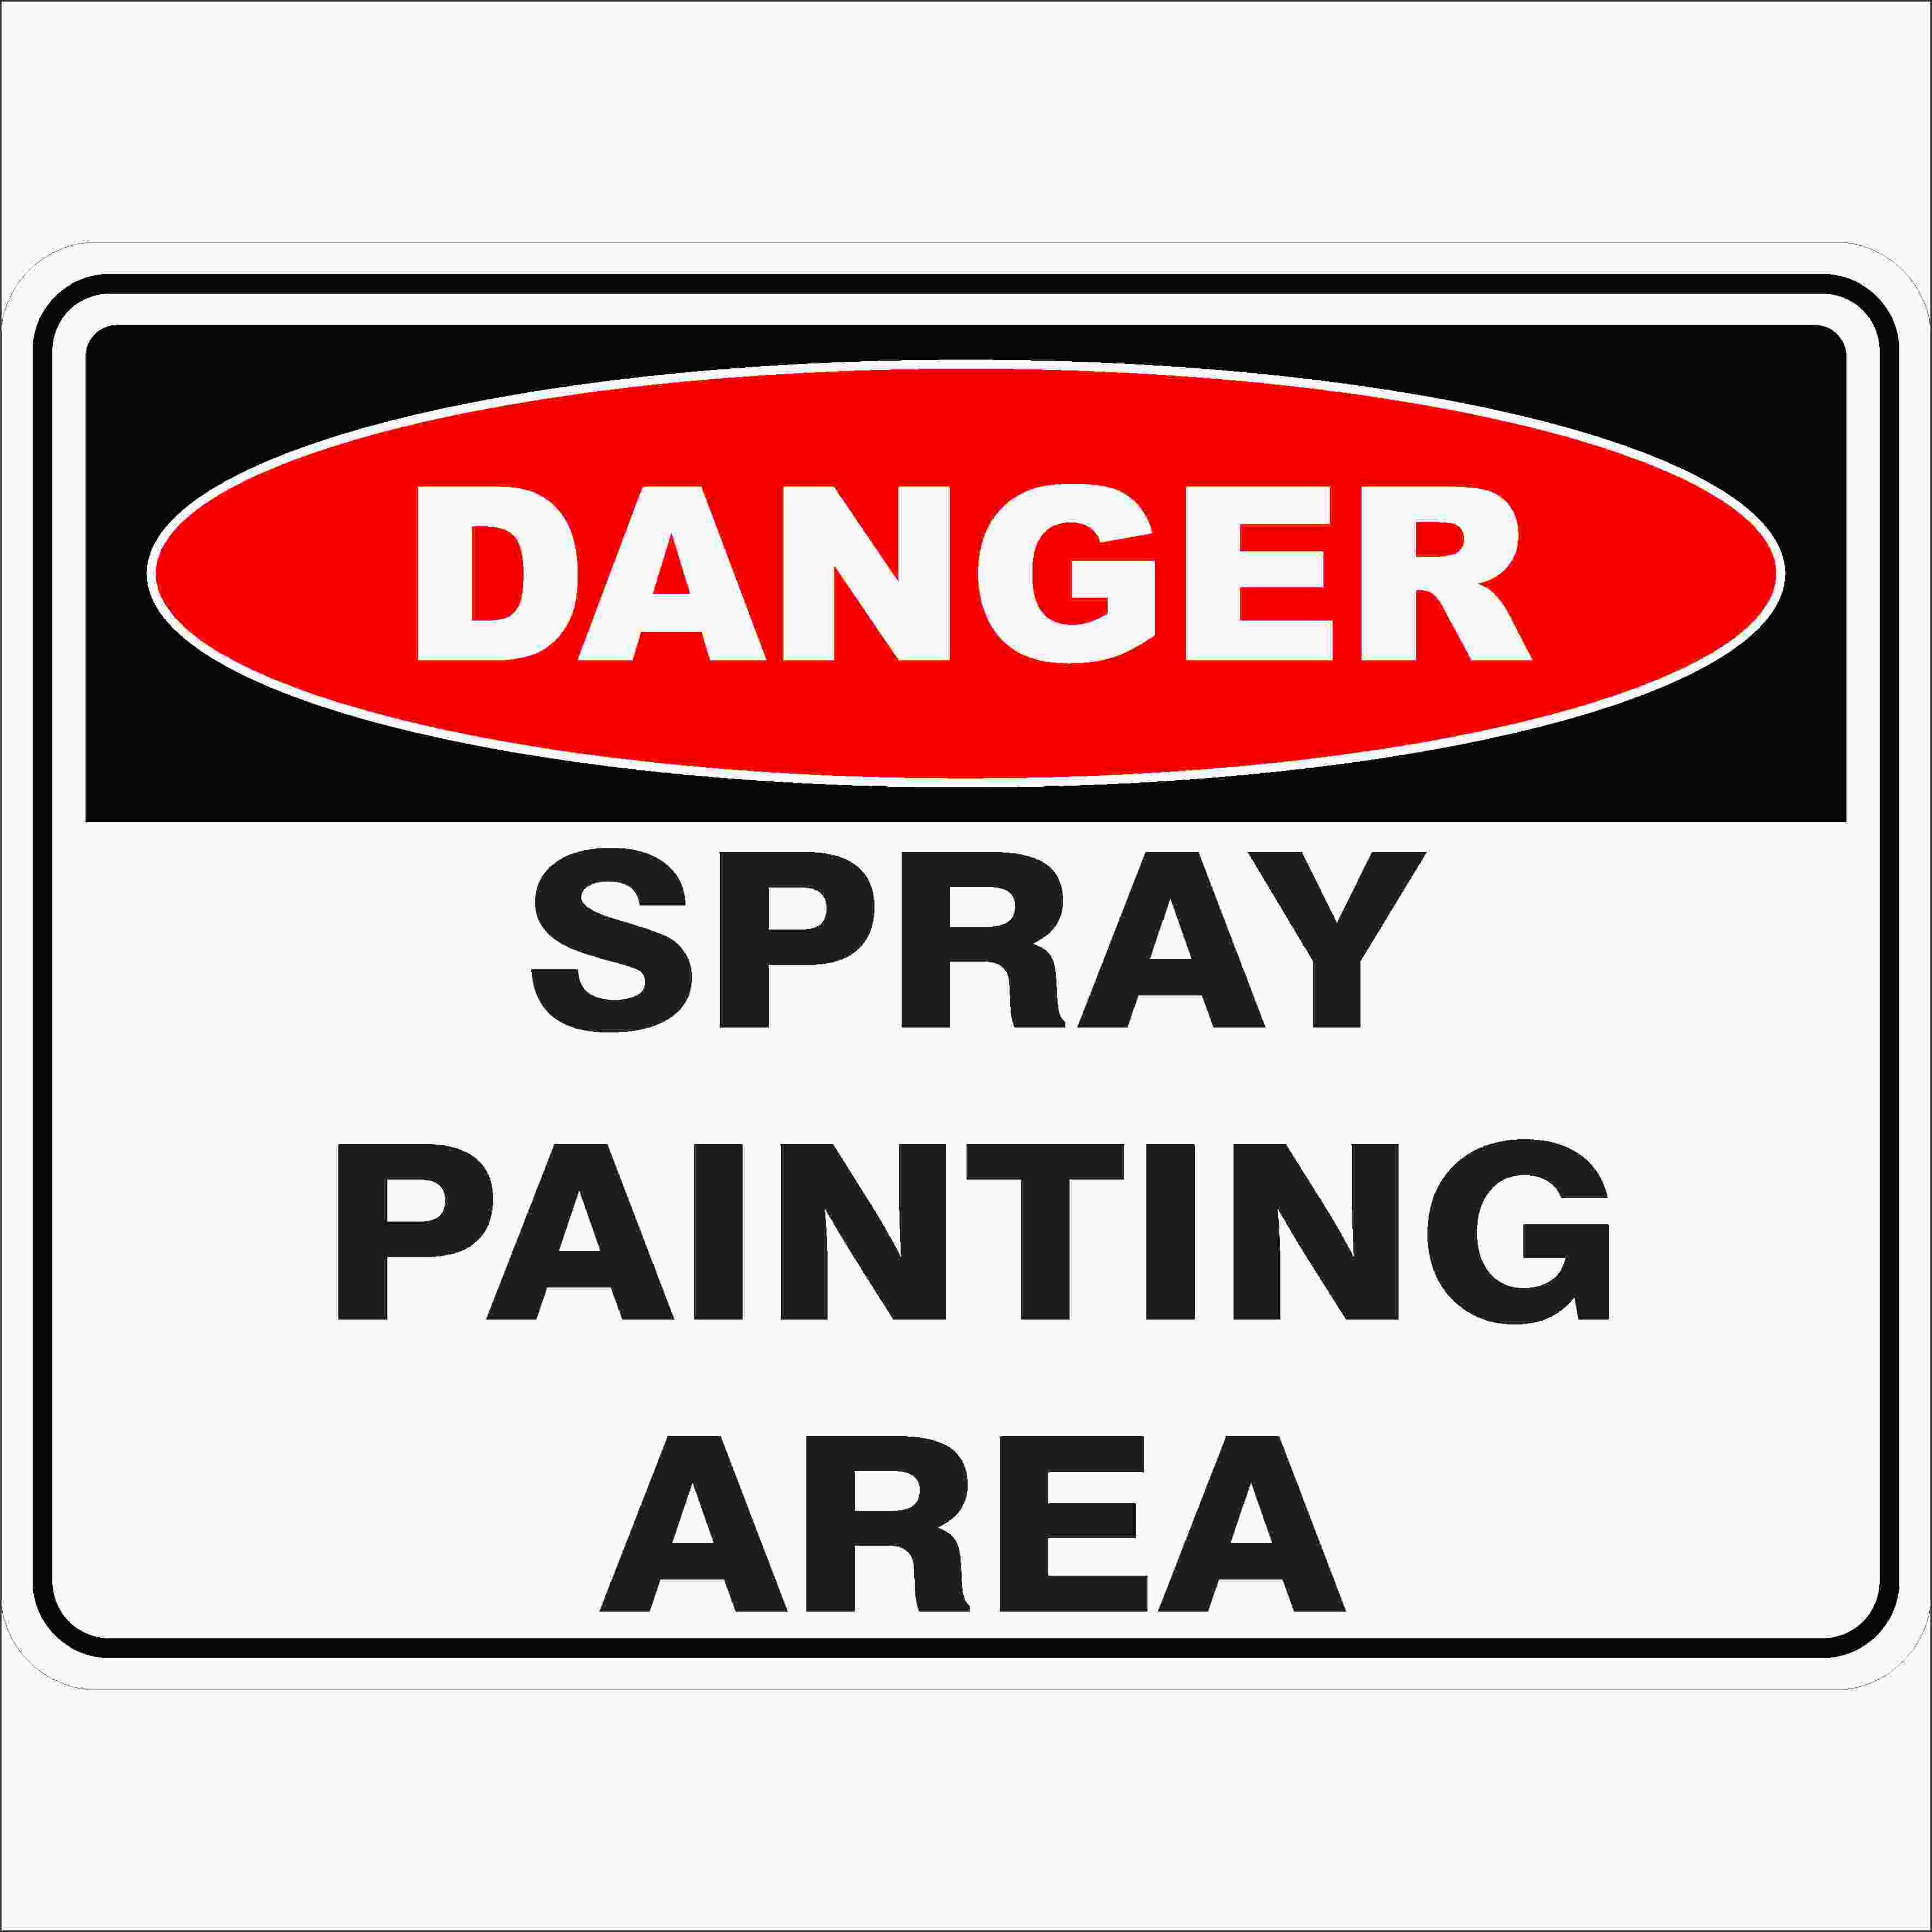 Spray painting area discount safety signs australia for Spray paint safety